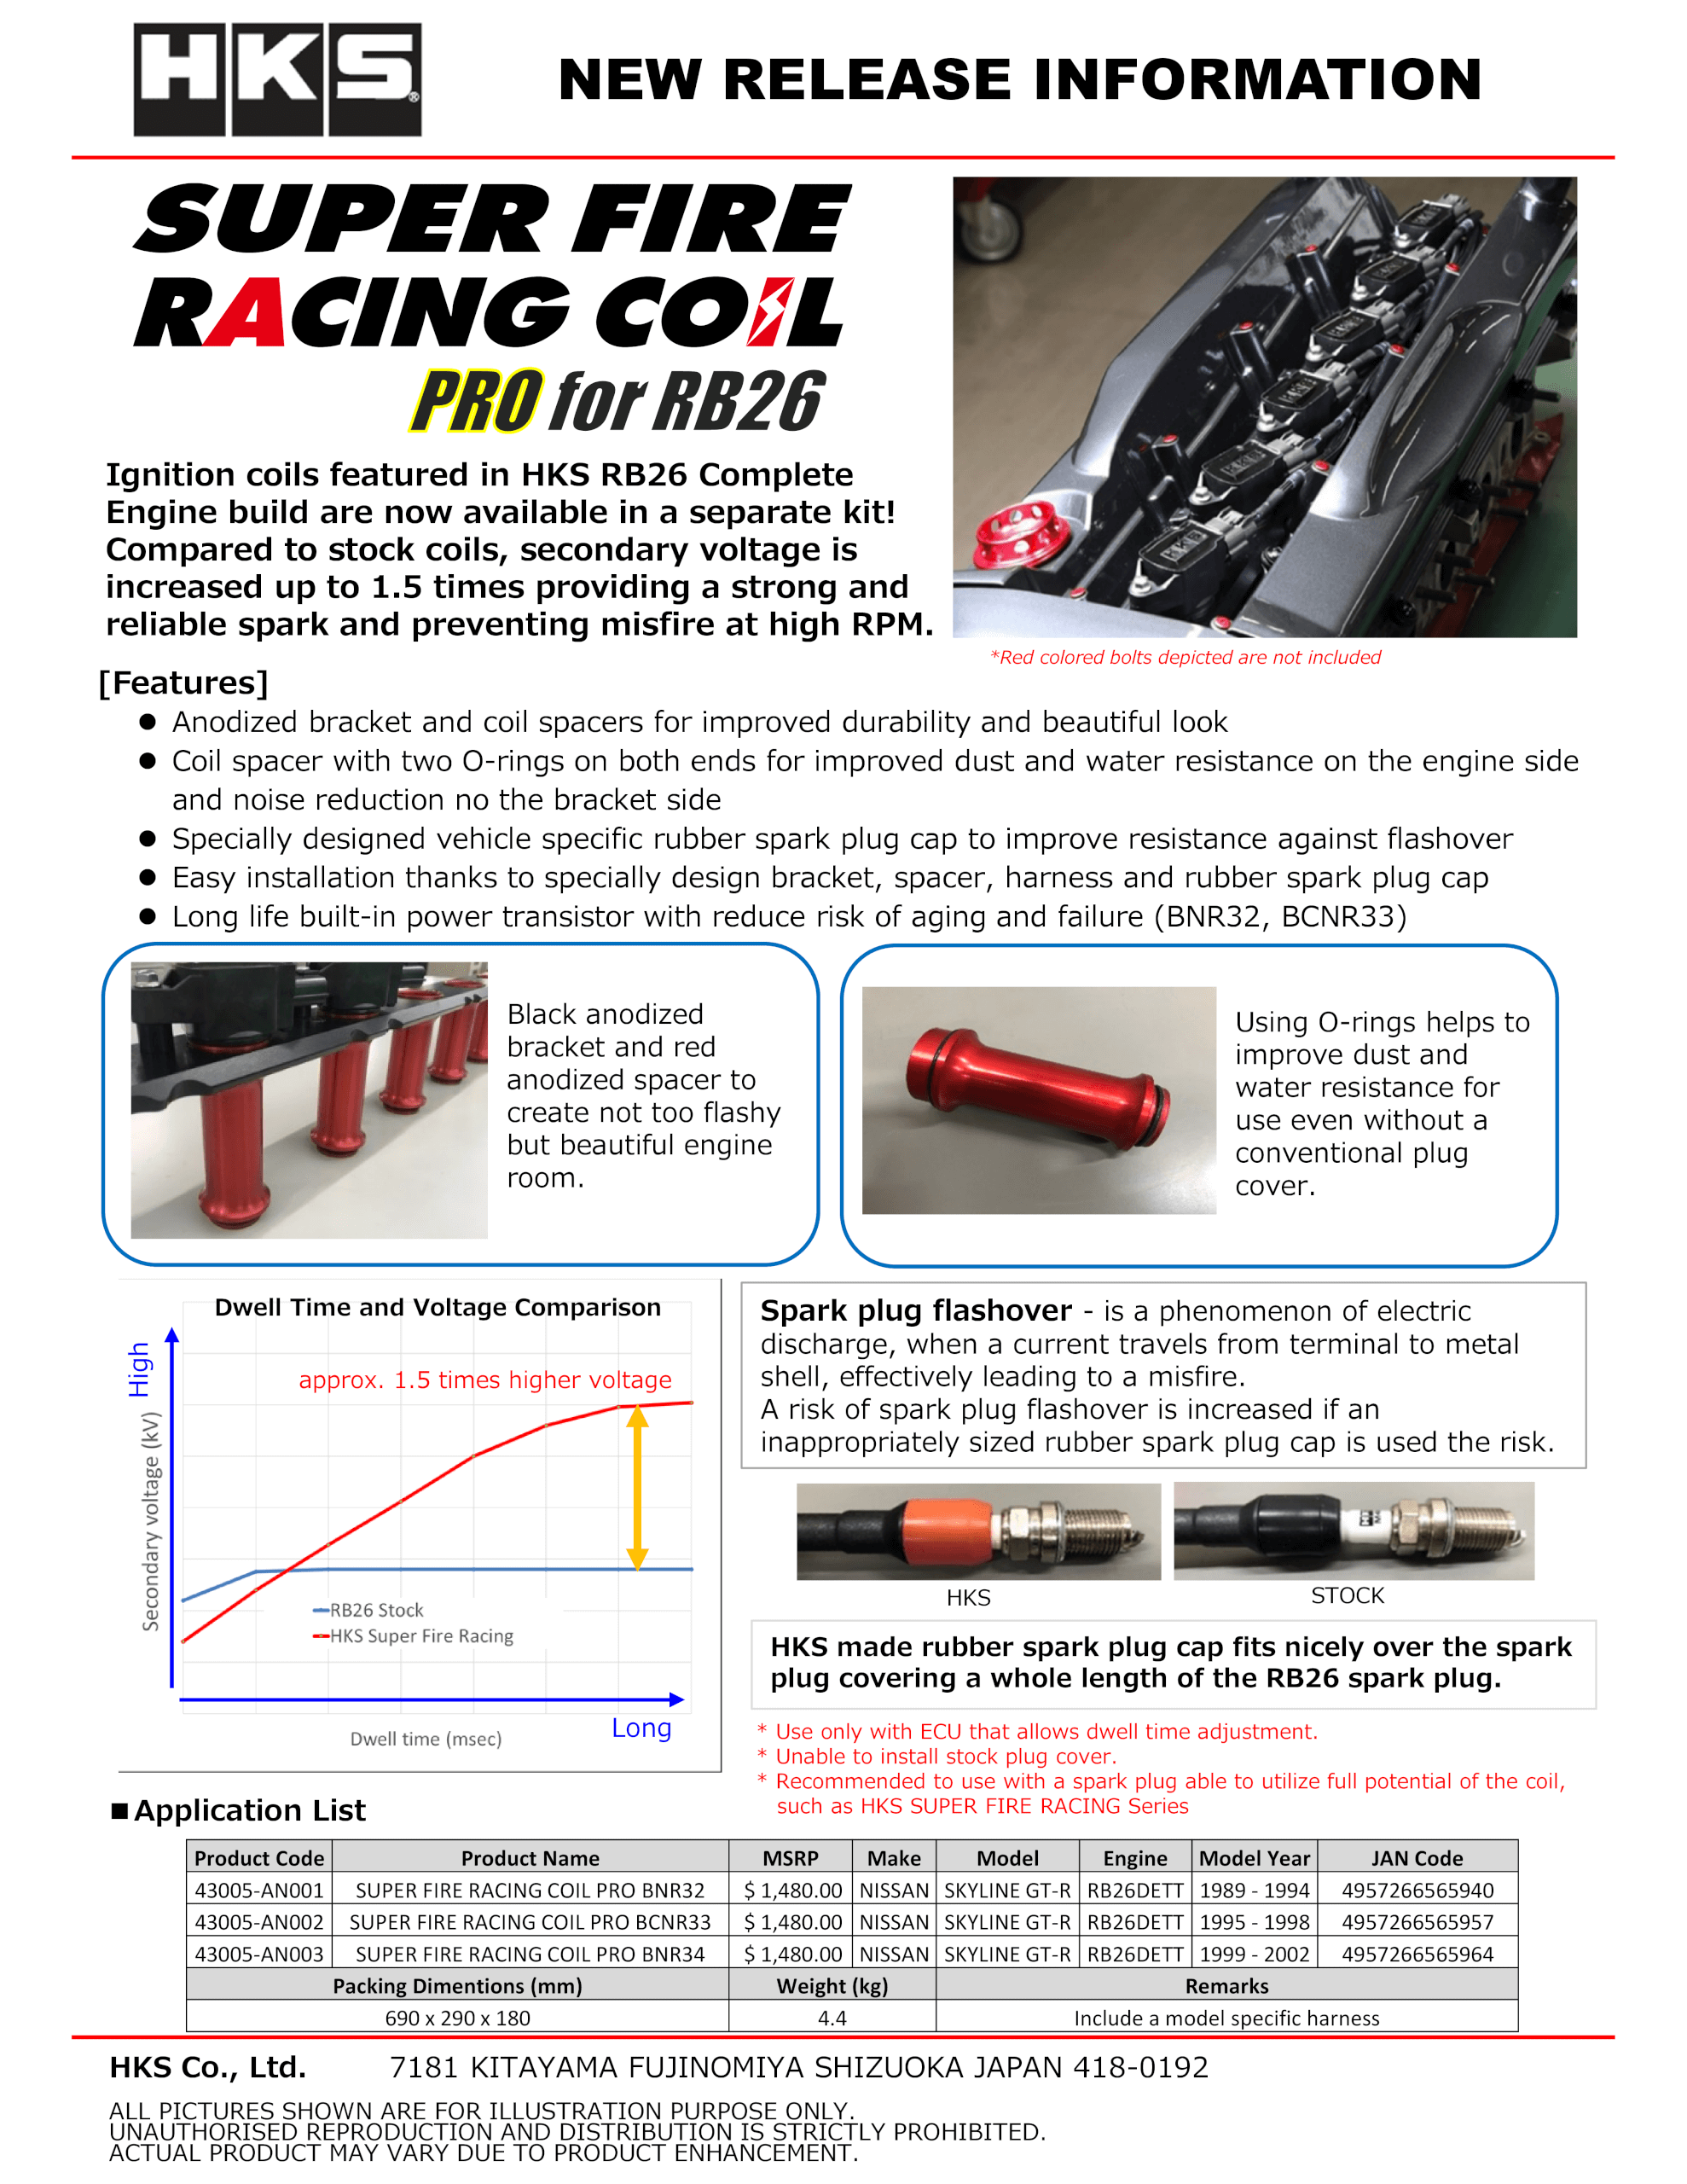 43005-AN001-AN003_SUPER FIRE RACING COIL PRO for RB26 revised.png